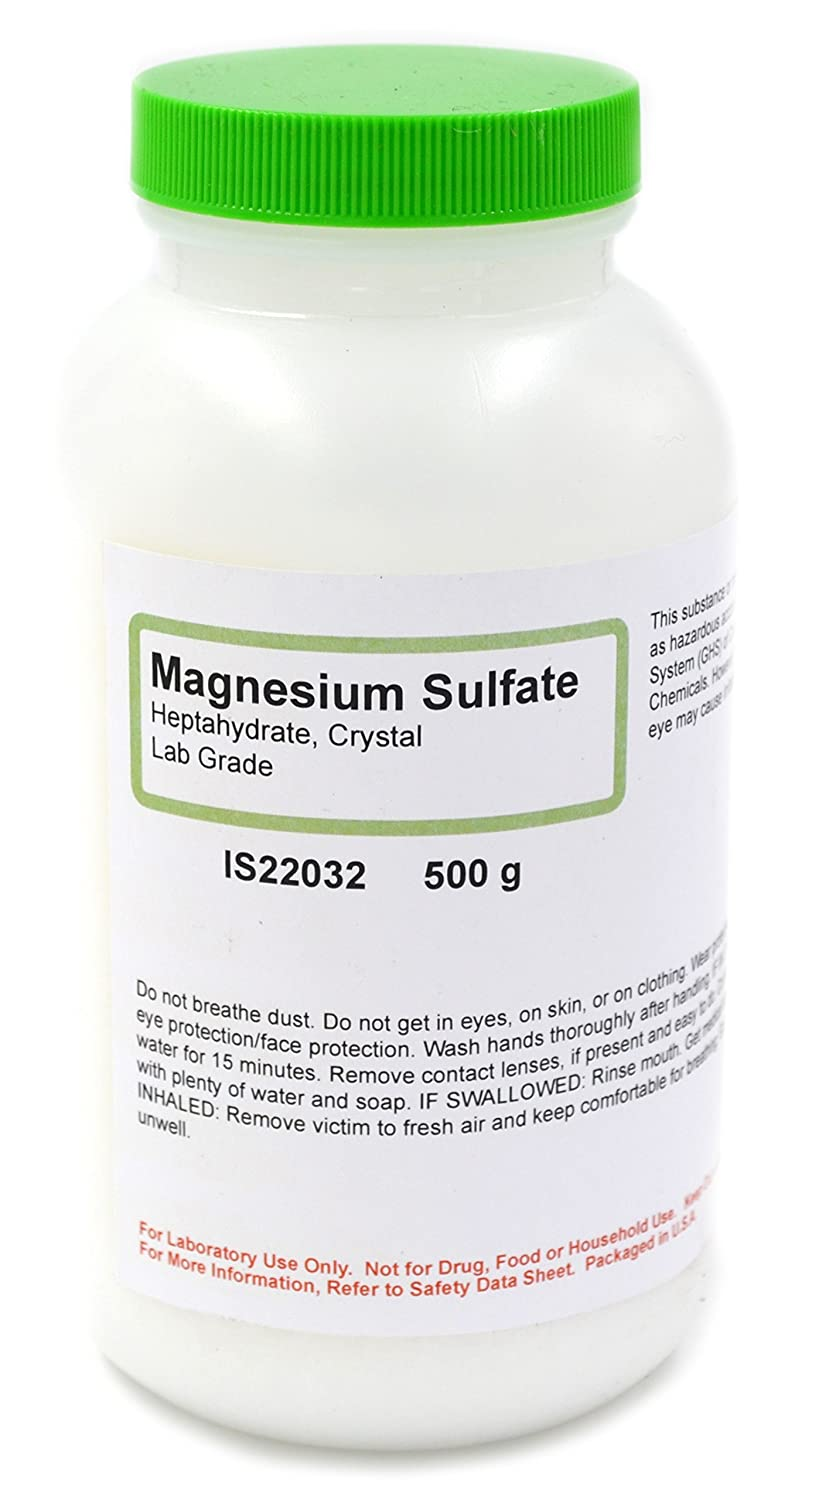 Magnesium Sulfate Crystals, 7-Hydrate, 500g - Laboratory Grade - Excellent for Mixing Magnesium Solutions - The Curated Chemical Collection by Innovating Science